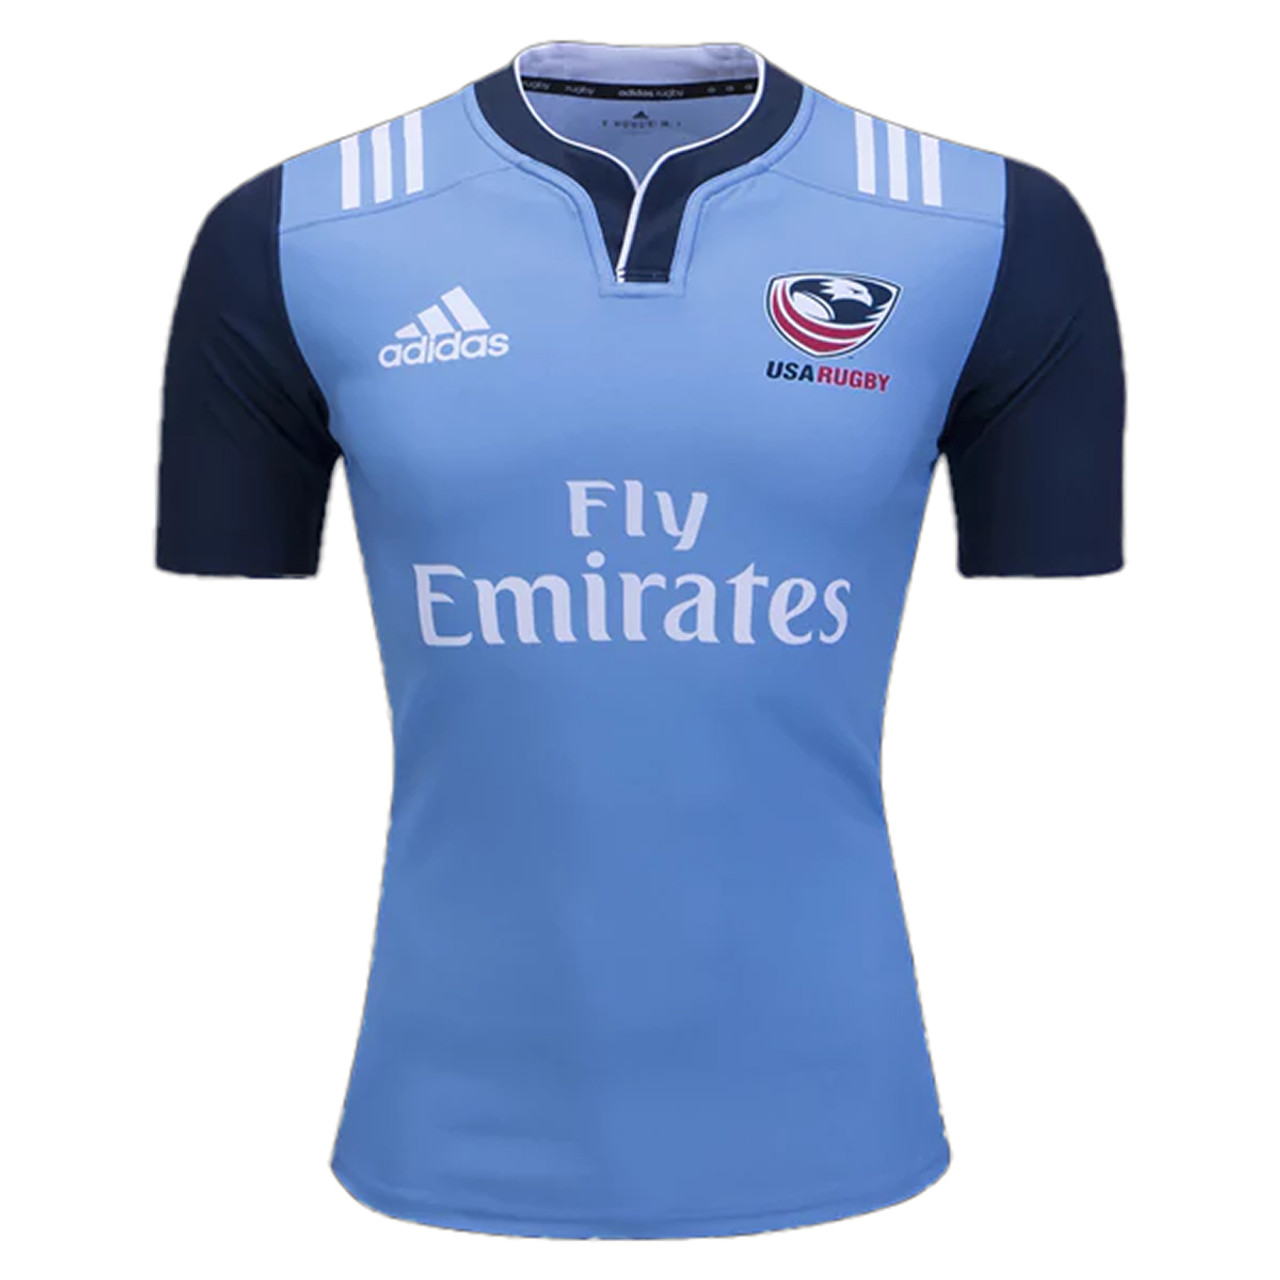 best website 366c6 0435f USA Rugby 2017 Training Rugby Jersey - Blue